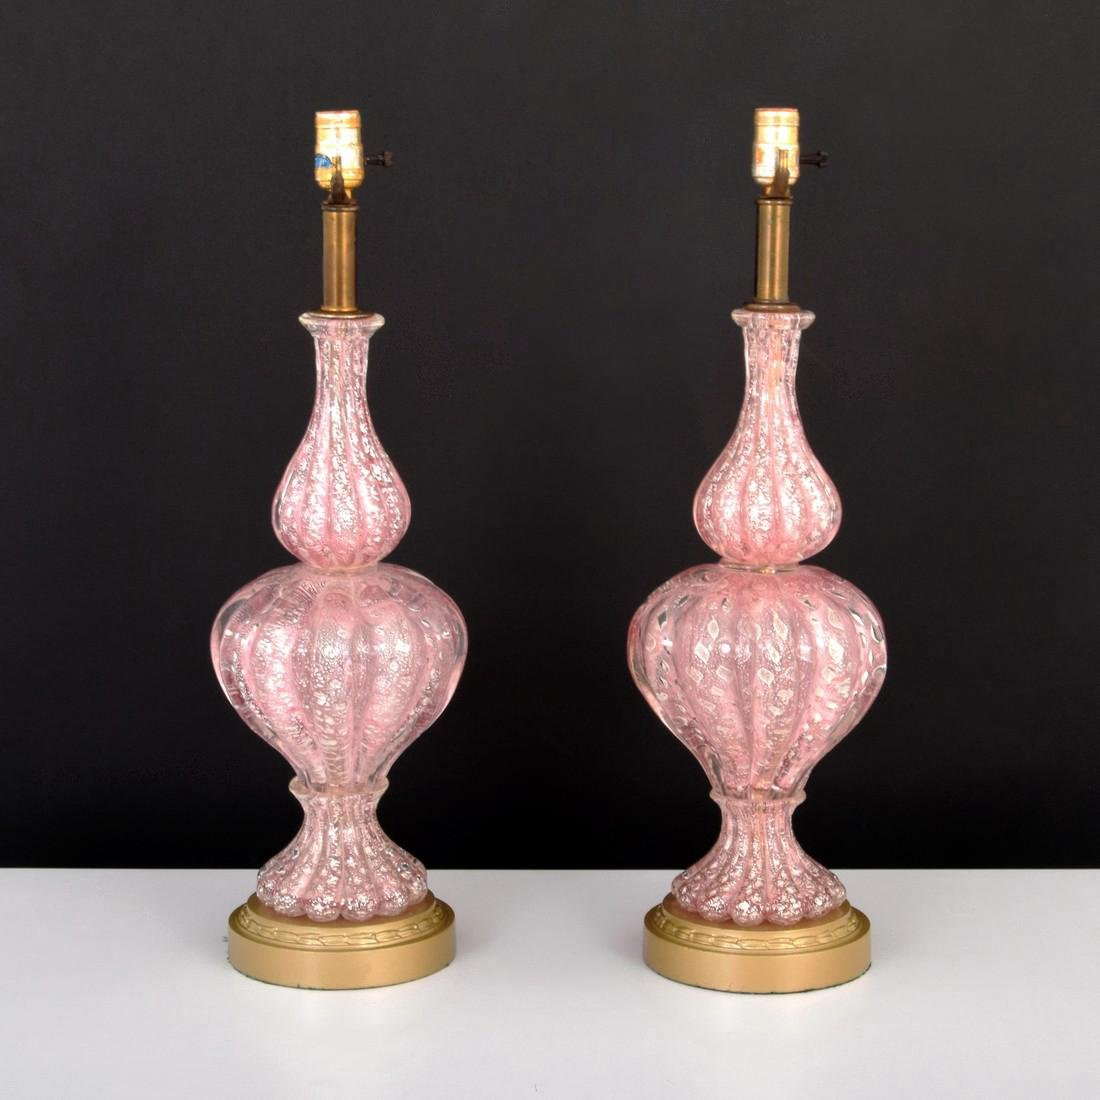 Pair of Large Lamps Attributed to Barovier & Toso